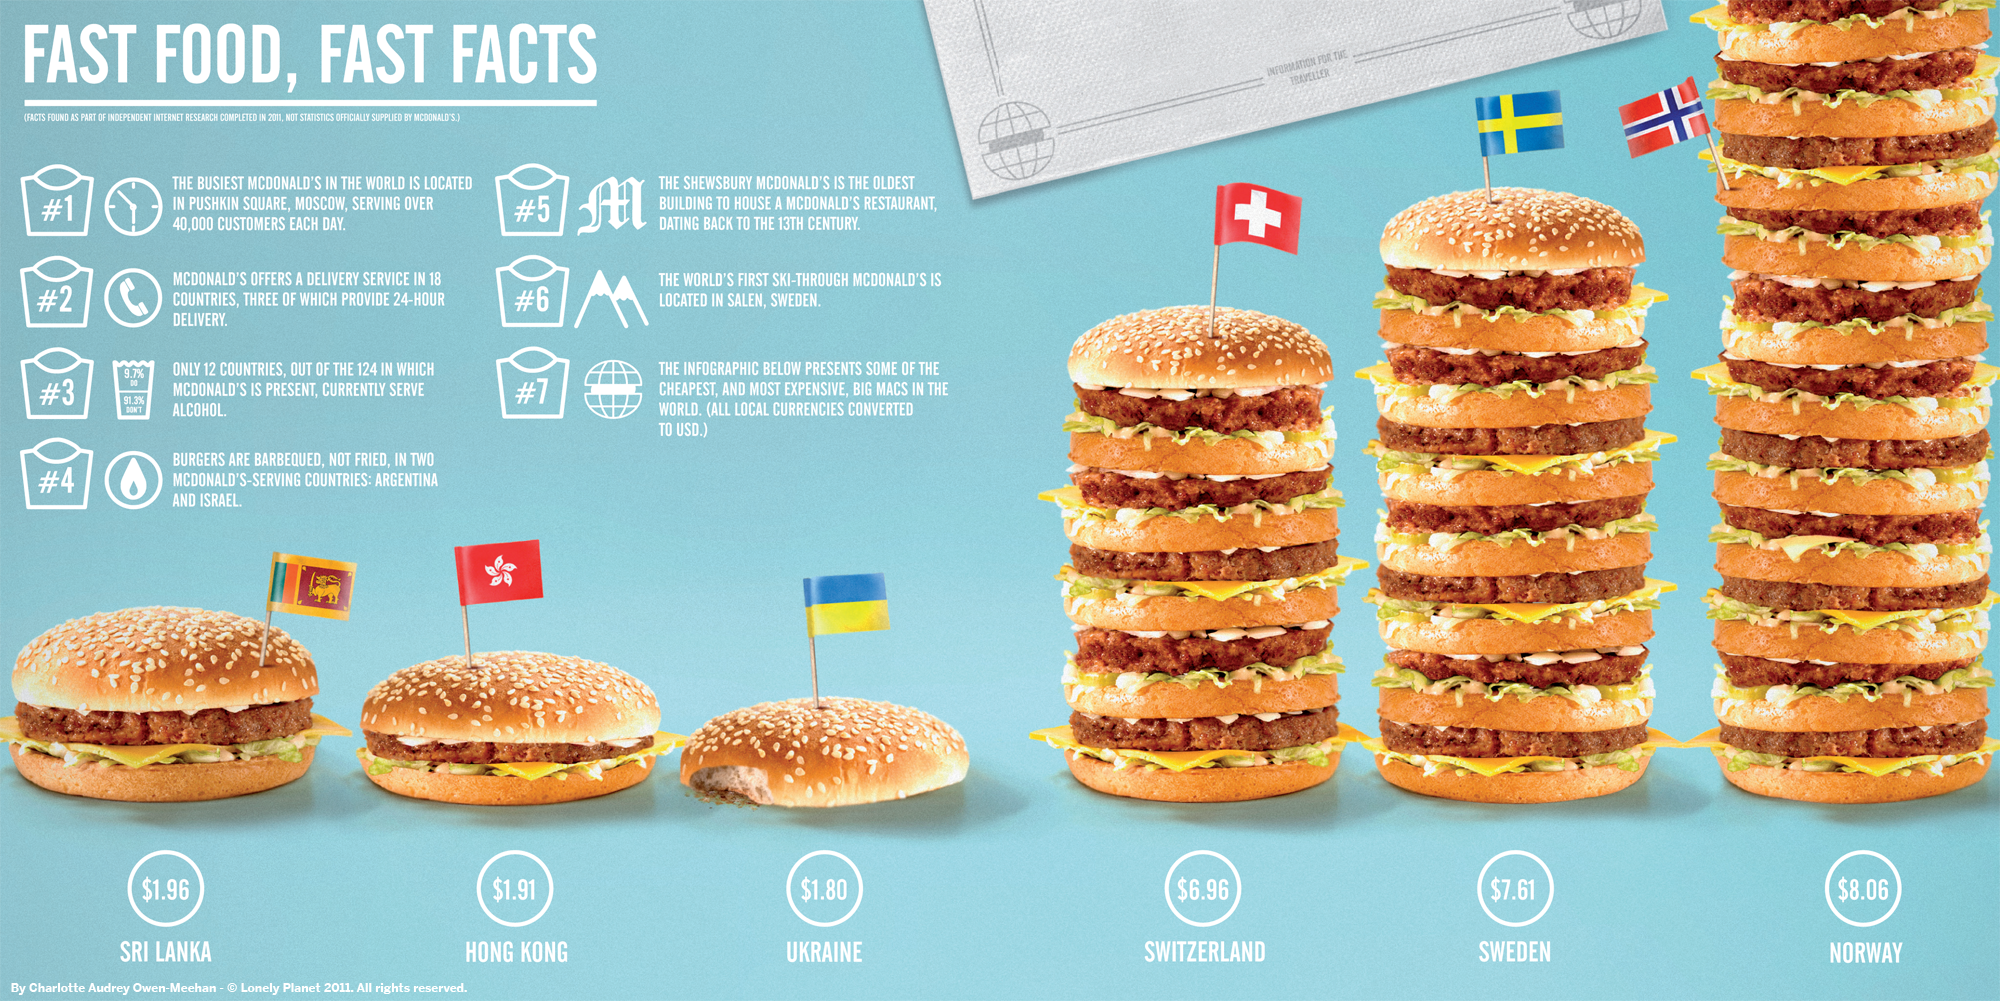 INFOGRAPHIC: Fast Food, Fast Facts